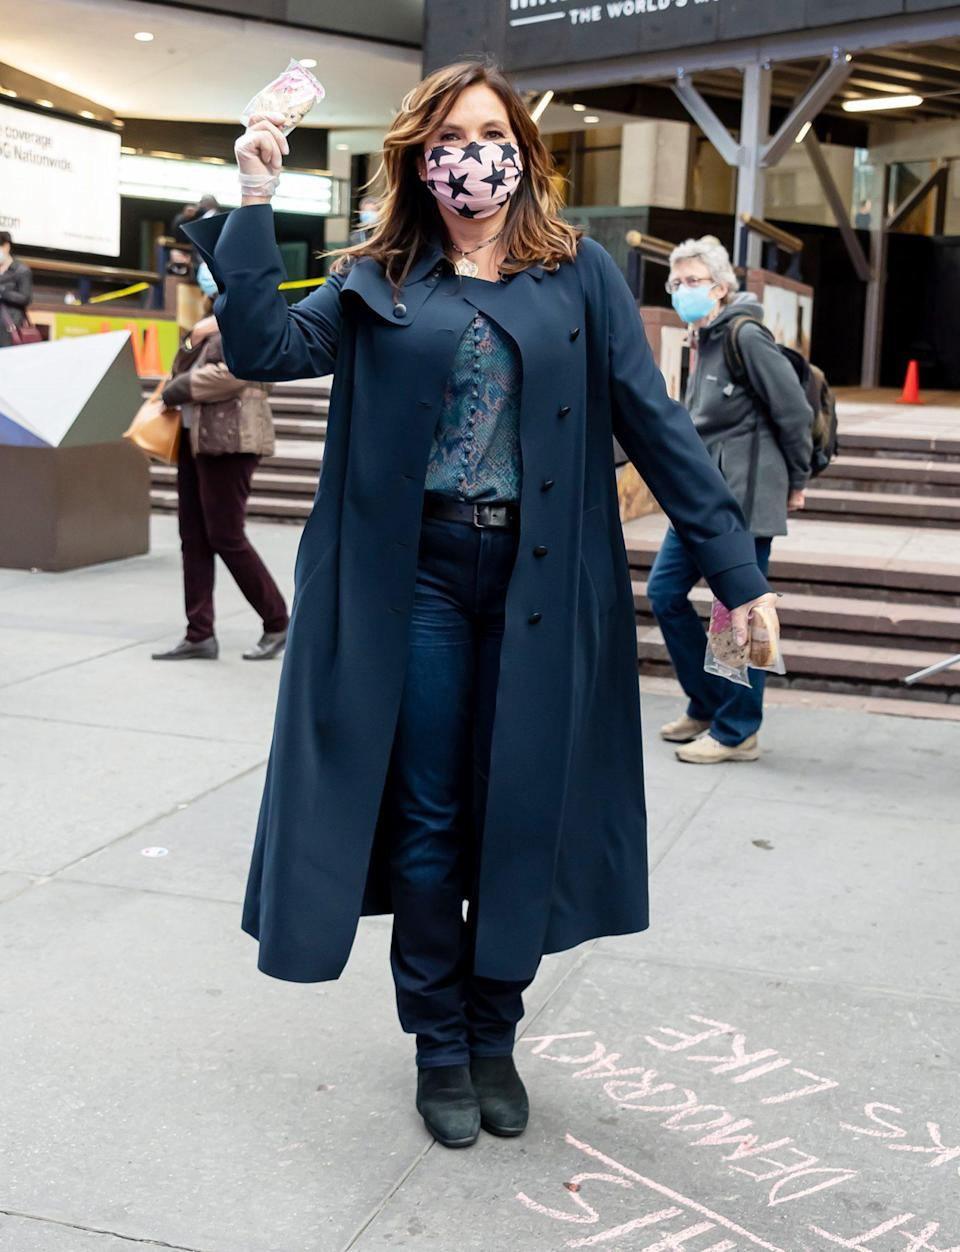 <p>Mariska Hargitay joins Election Super Centers' project to hand out Milk Bar cookies to voters outside the Madison Square Garden polling site on Tuesday in N.Y.C. </p>